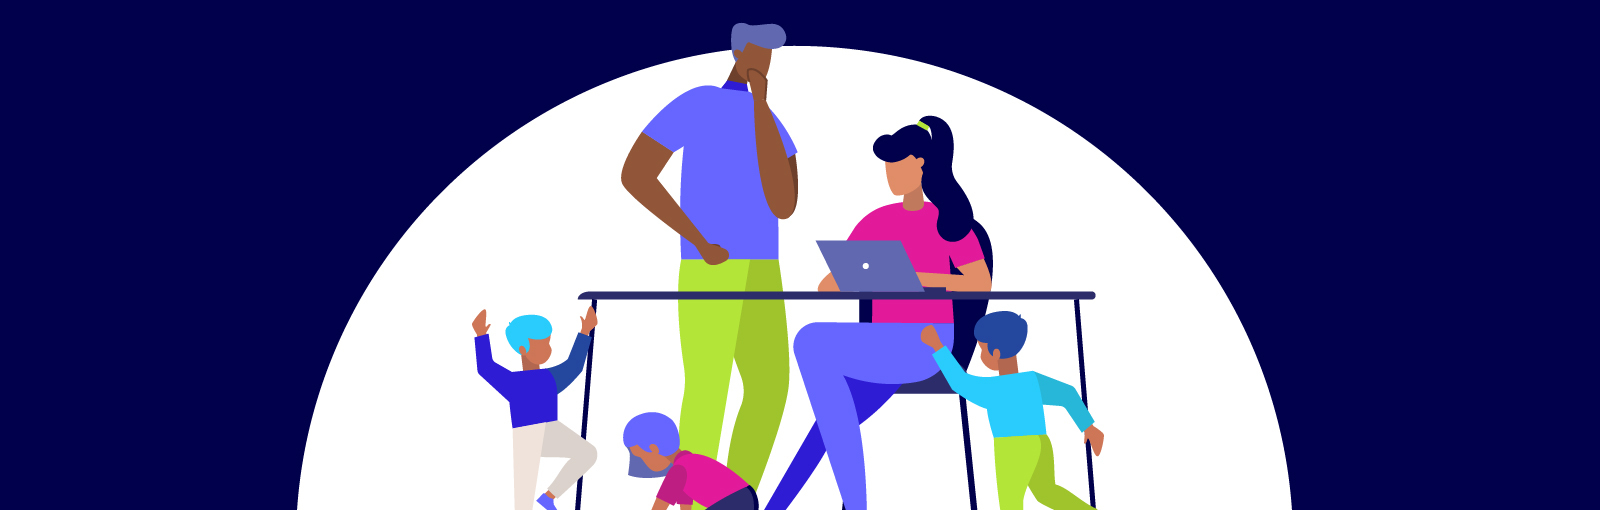 Make those parents proud: What parents expect from social media customer service in 2020